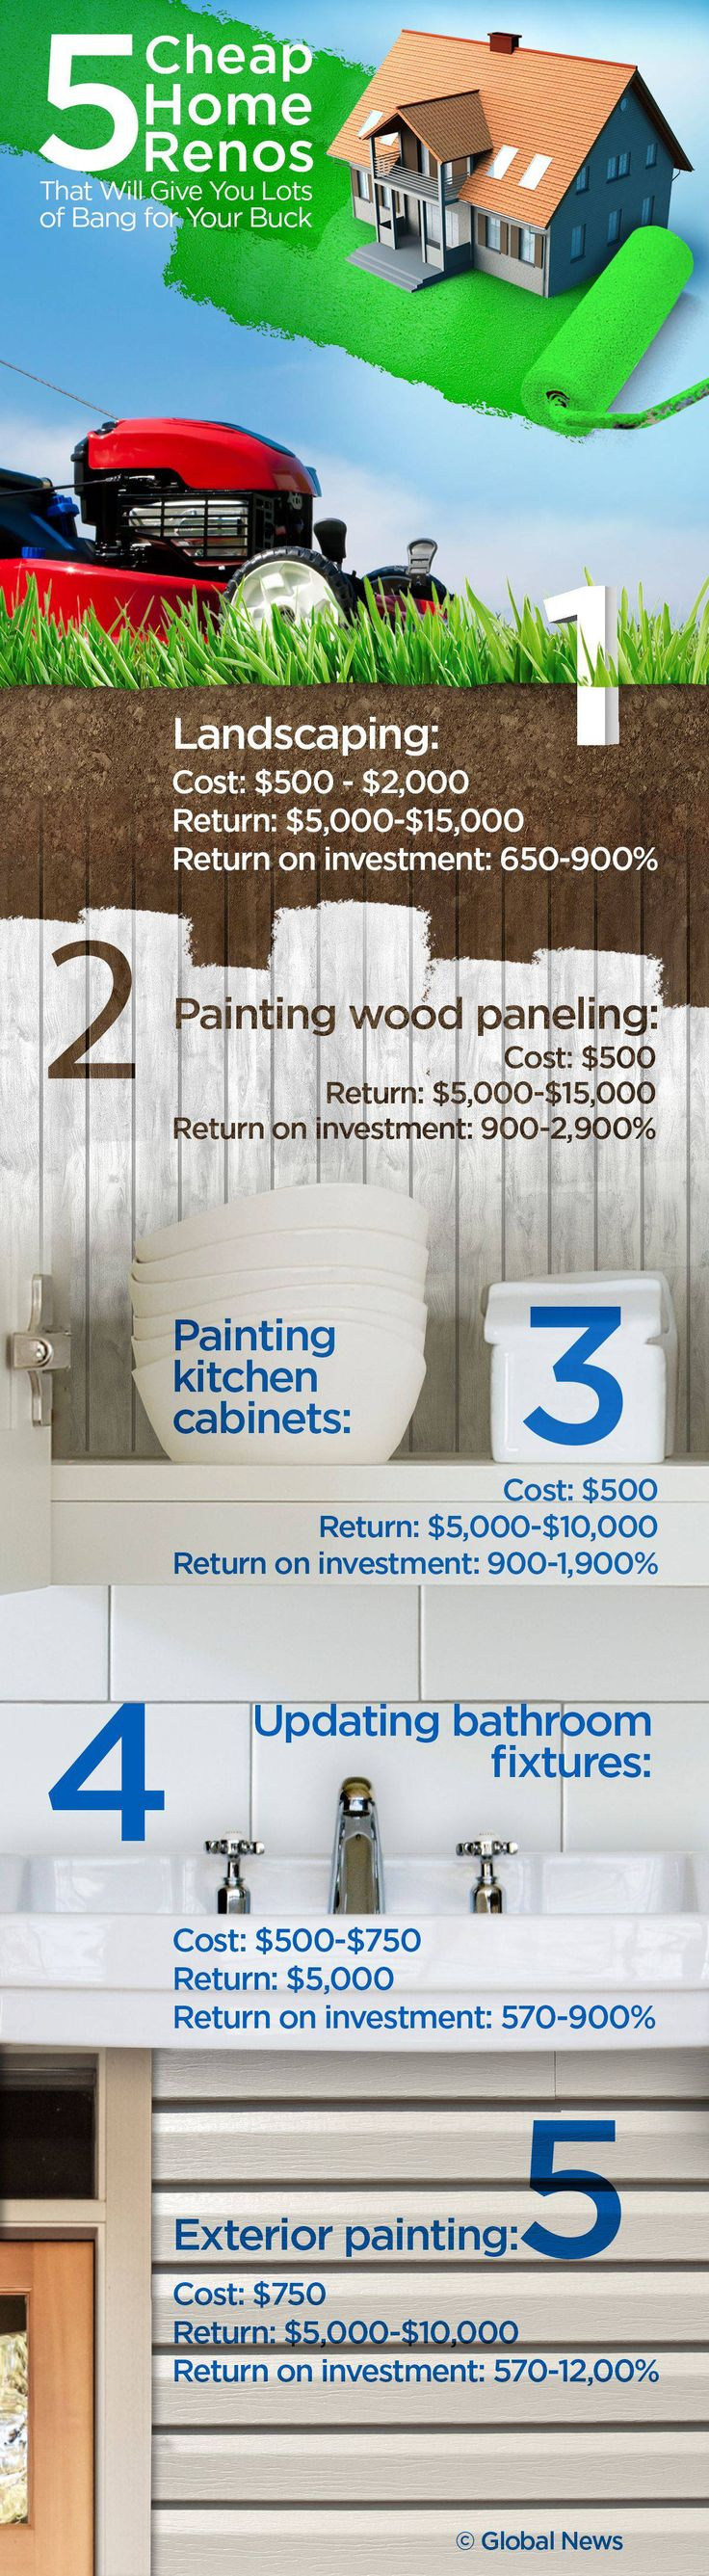 5 cheap home renovations that will give you lots of bang for your buck - National | Globalnews.ca